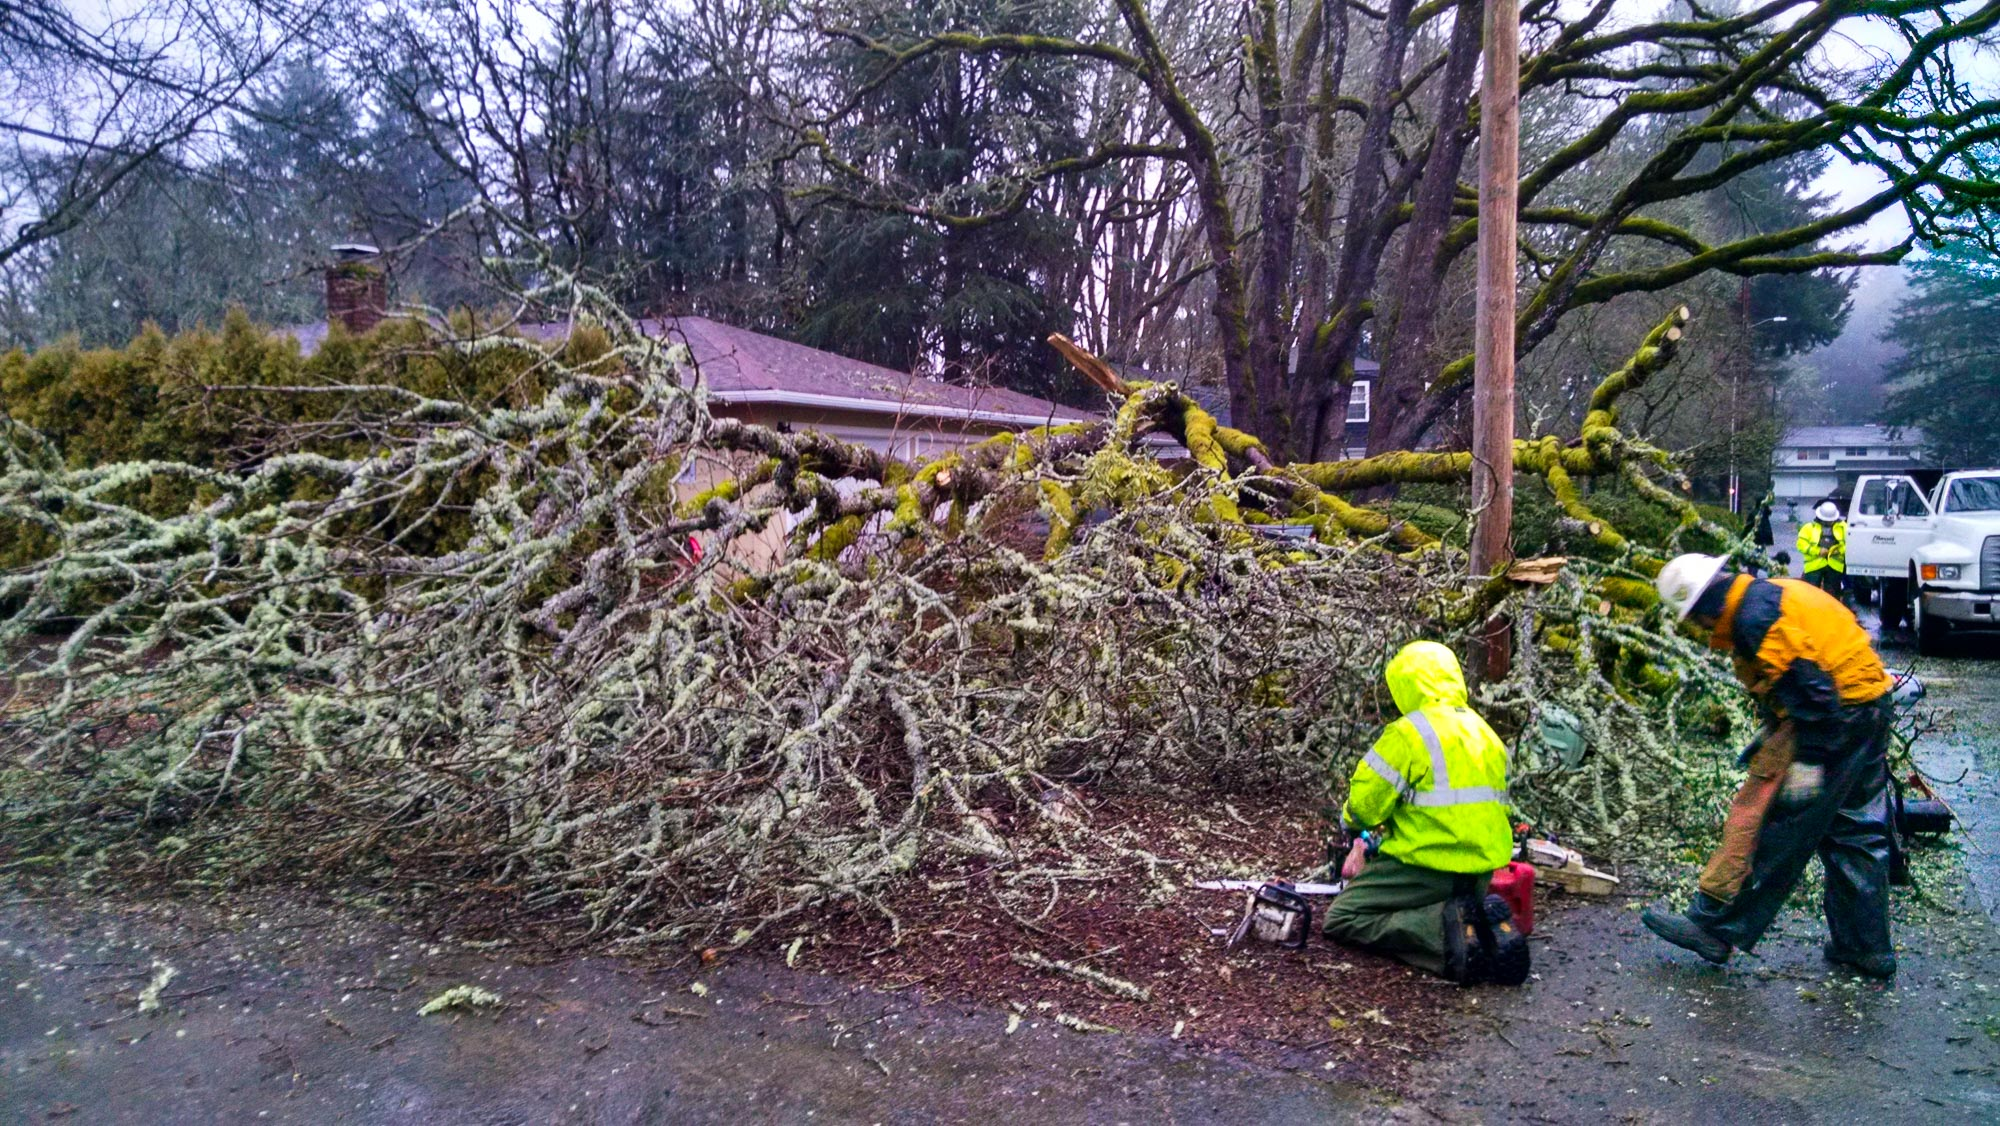 tree-service-removal-pruning-salem-oregon-822